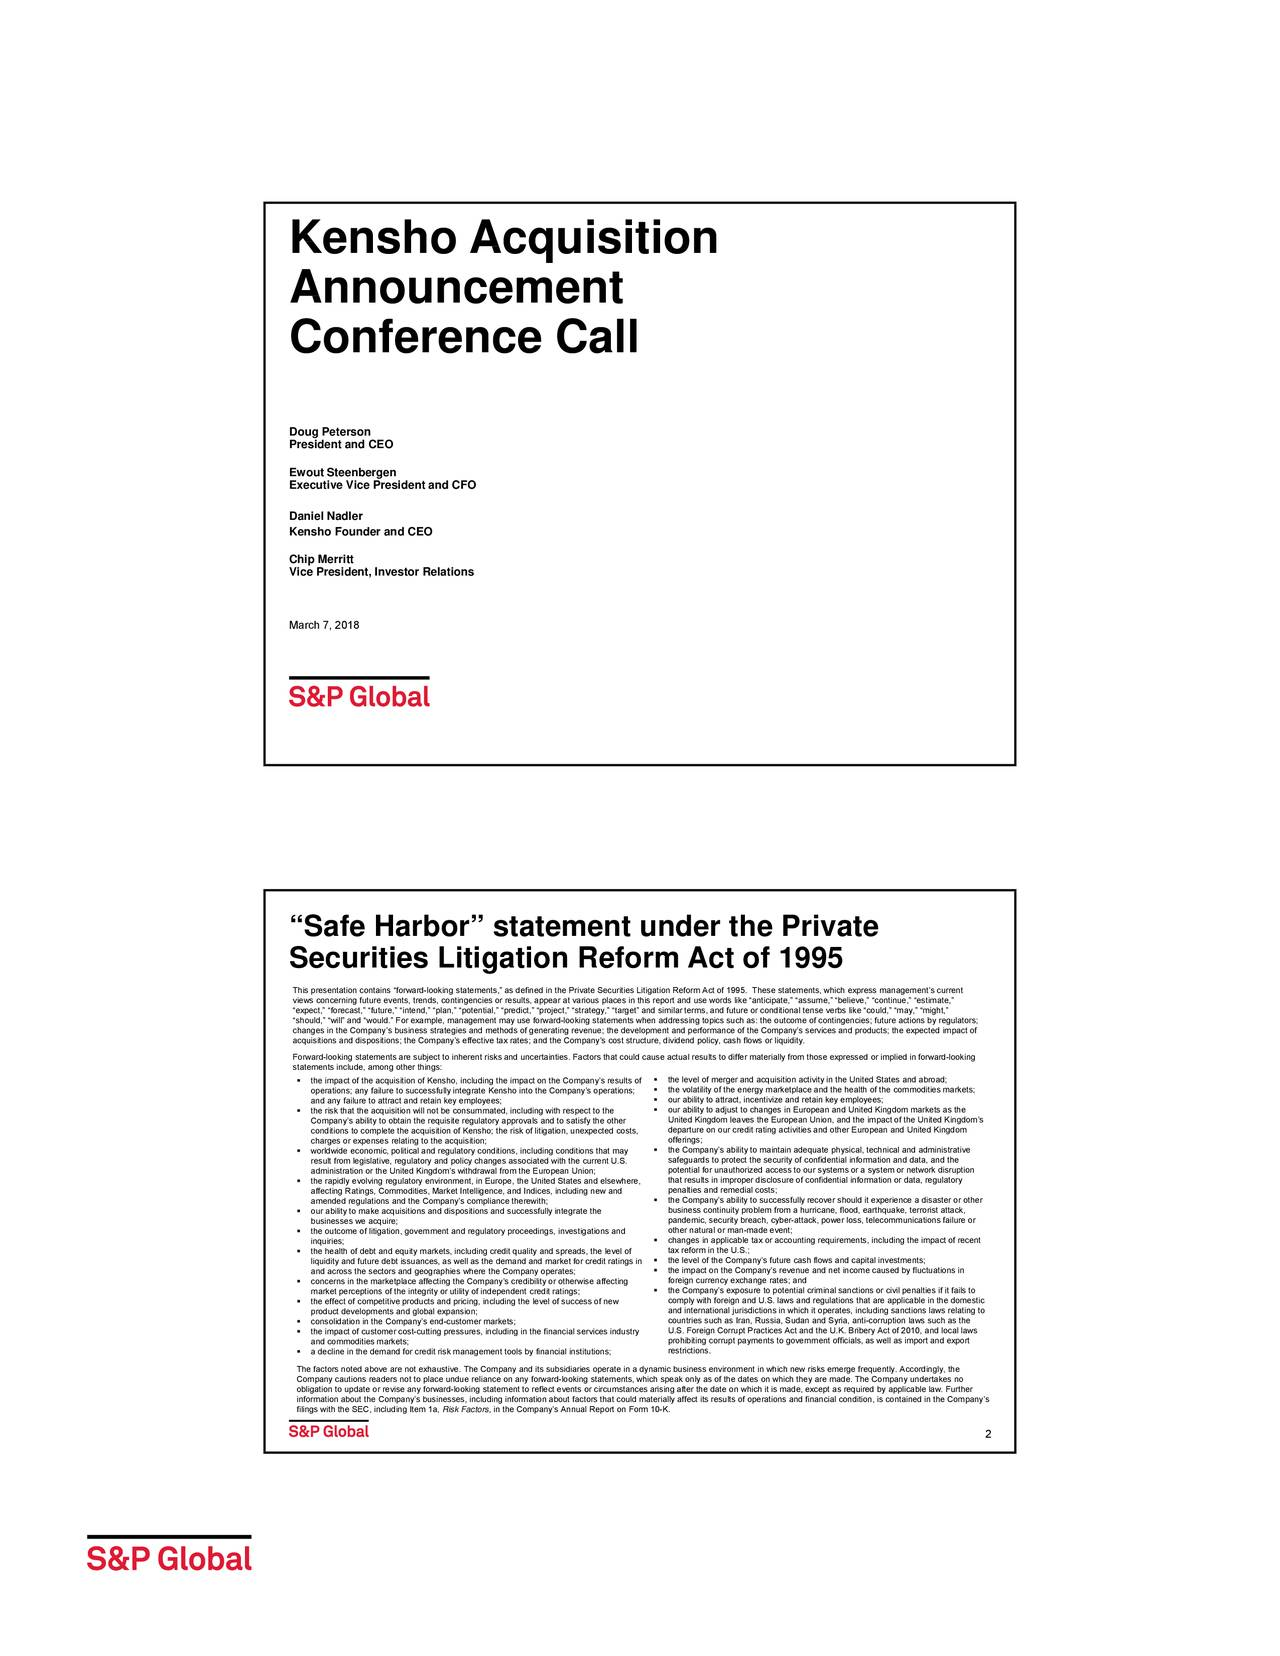 S&P Global (SPGI) To Acquire Kensho - Slideshow - S&P ...